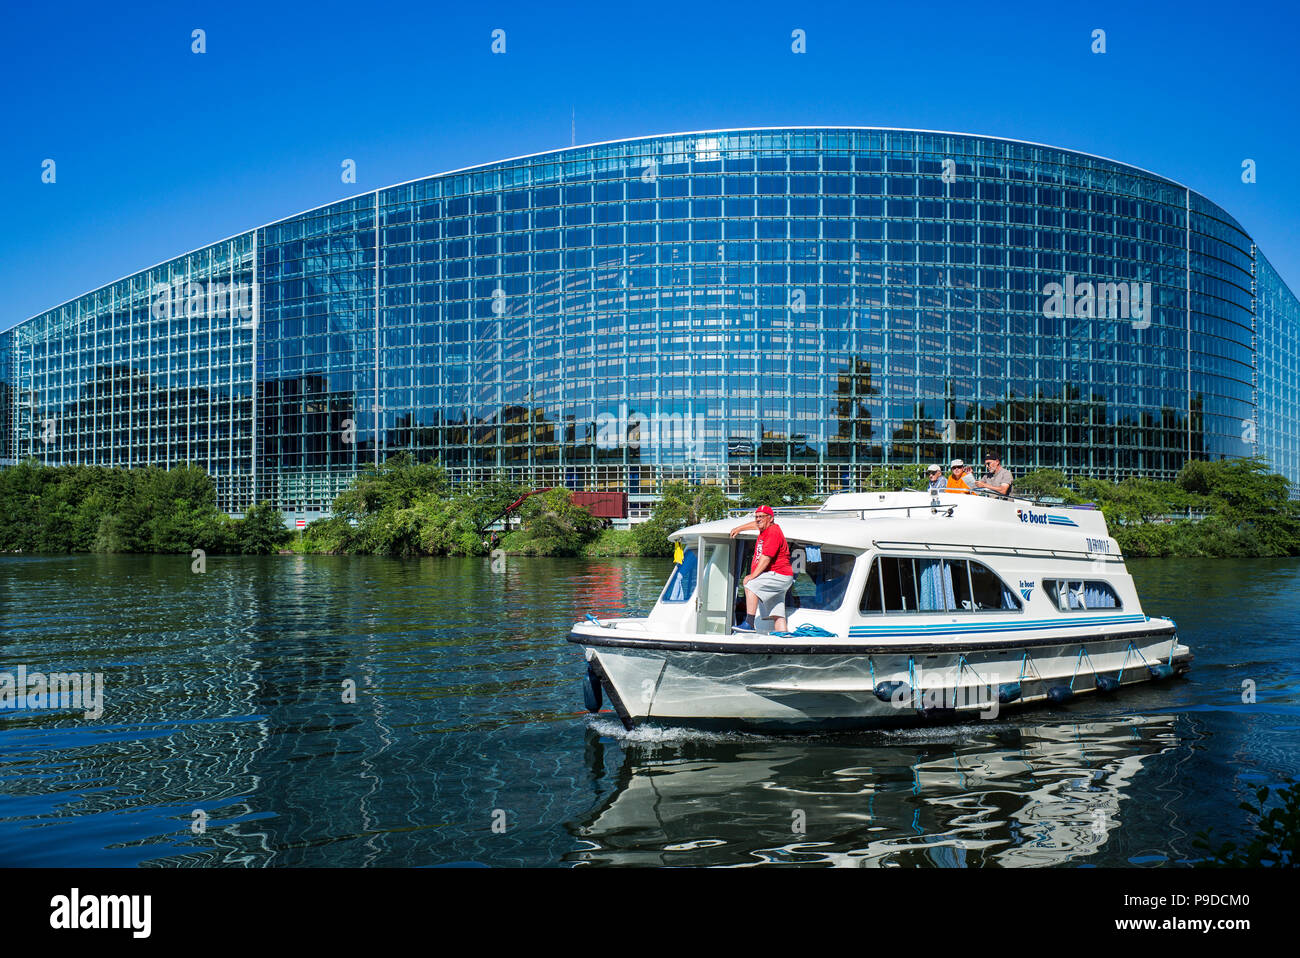 Strasbourg, pleasure boat cruising on Ill river, Louise Weiss building, European Parliament, Alsace, France, Europe, - Stock Image